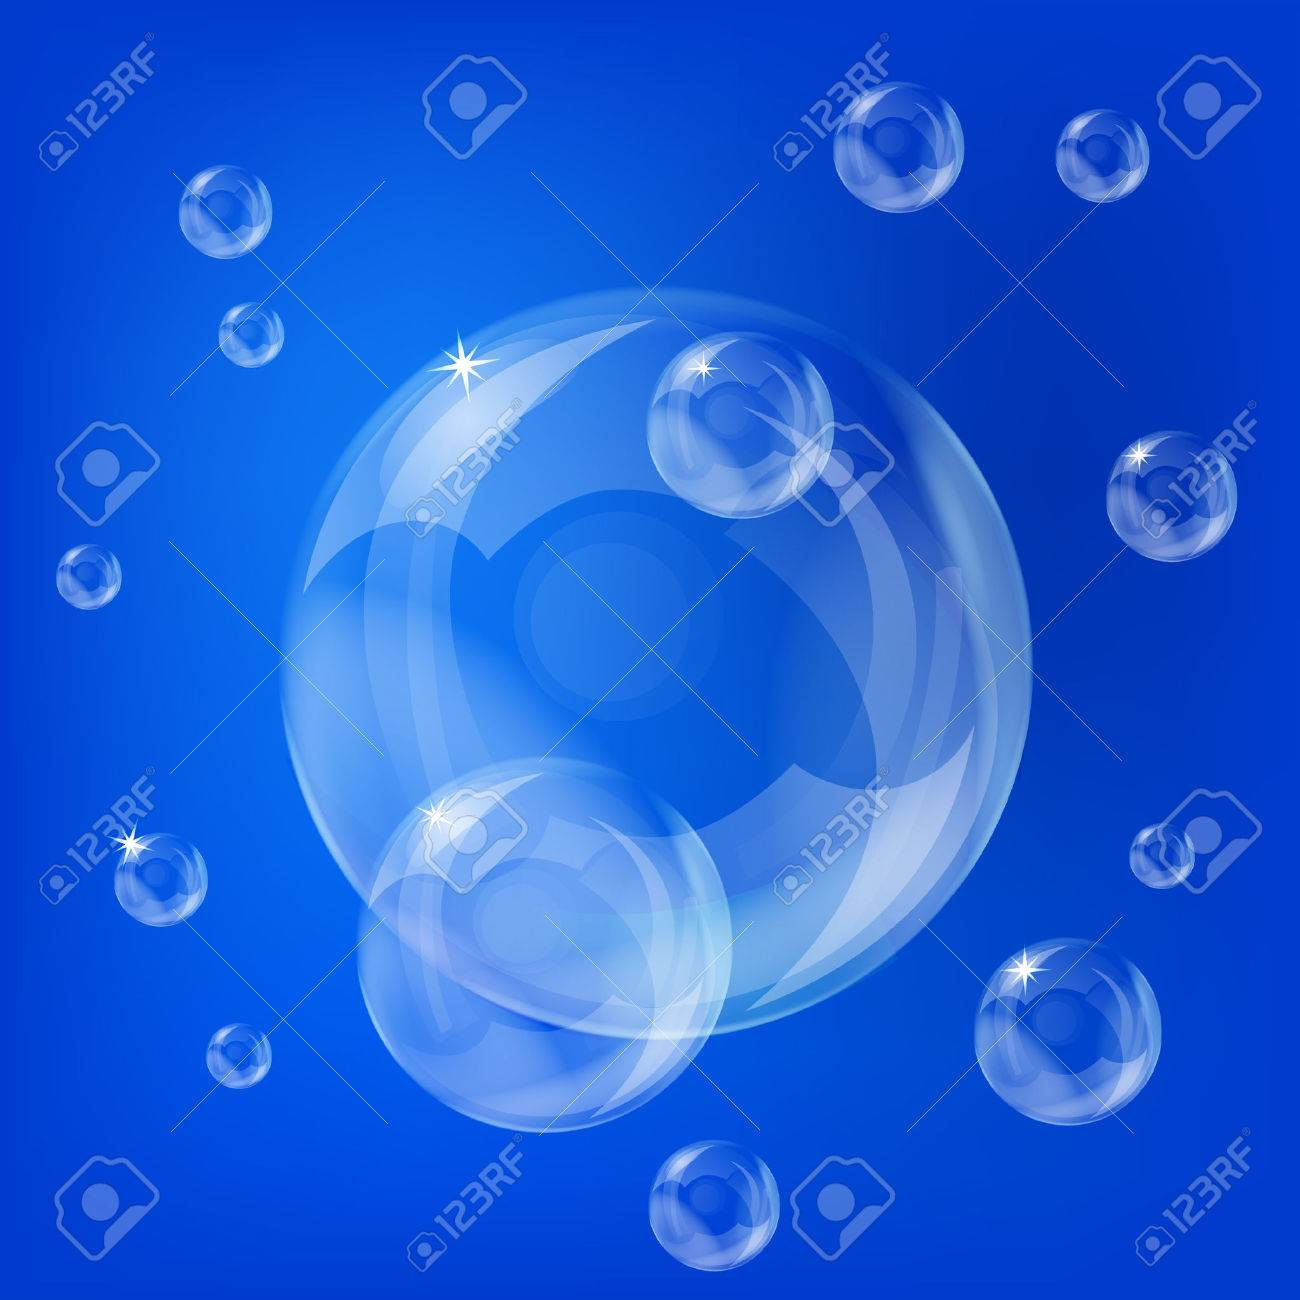 Group pf transoarent soap bubbles on the blue background Stock Vector - 8142719